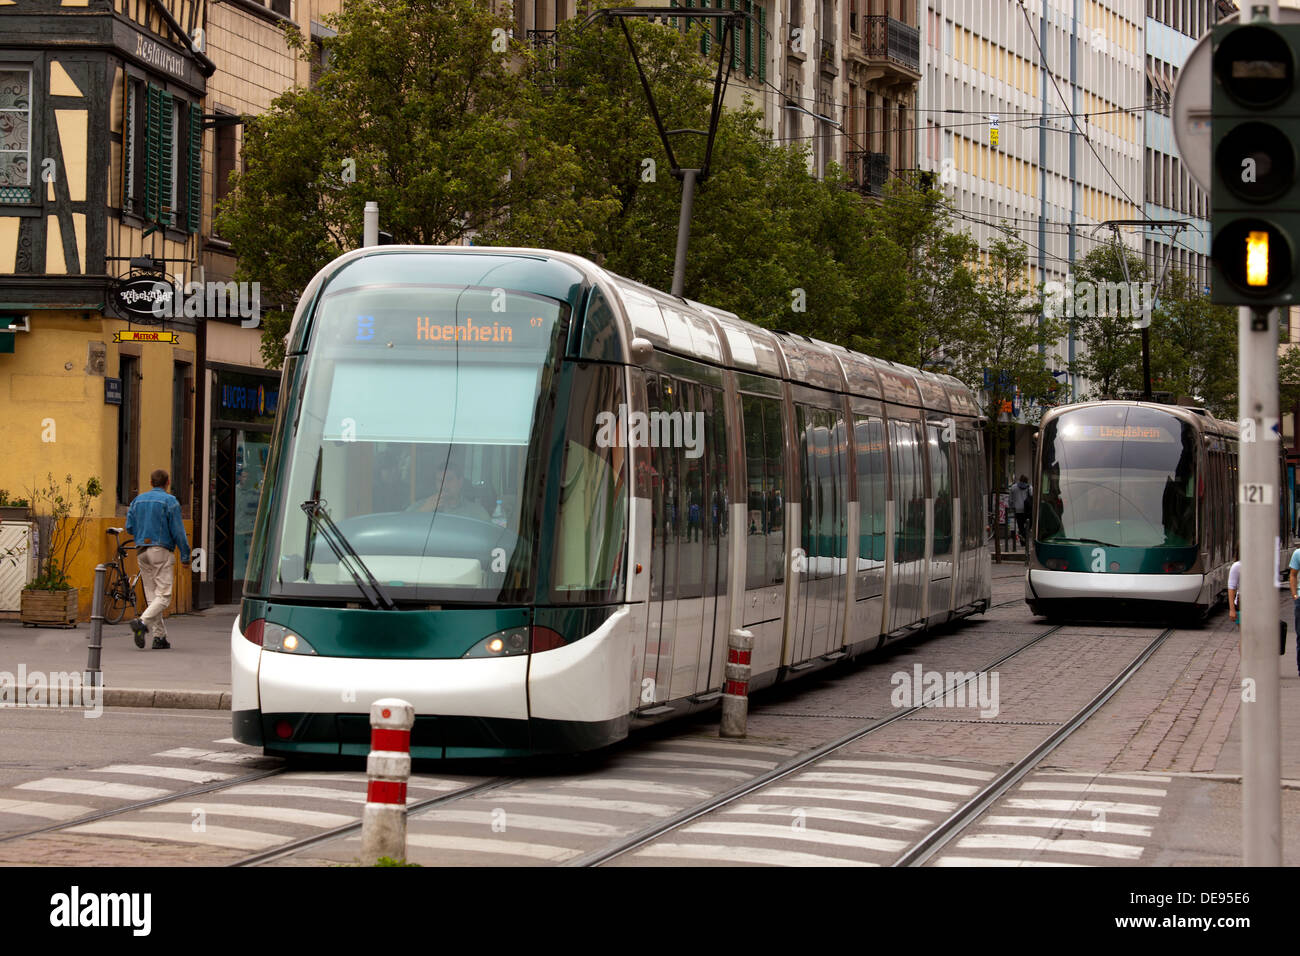 Urban electric trains move people in Strasbourg, France. - Stock Image